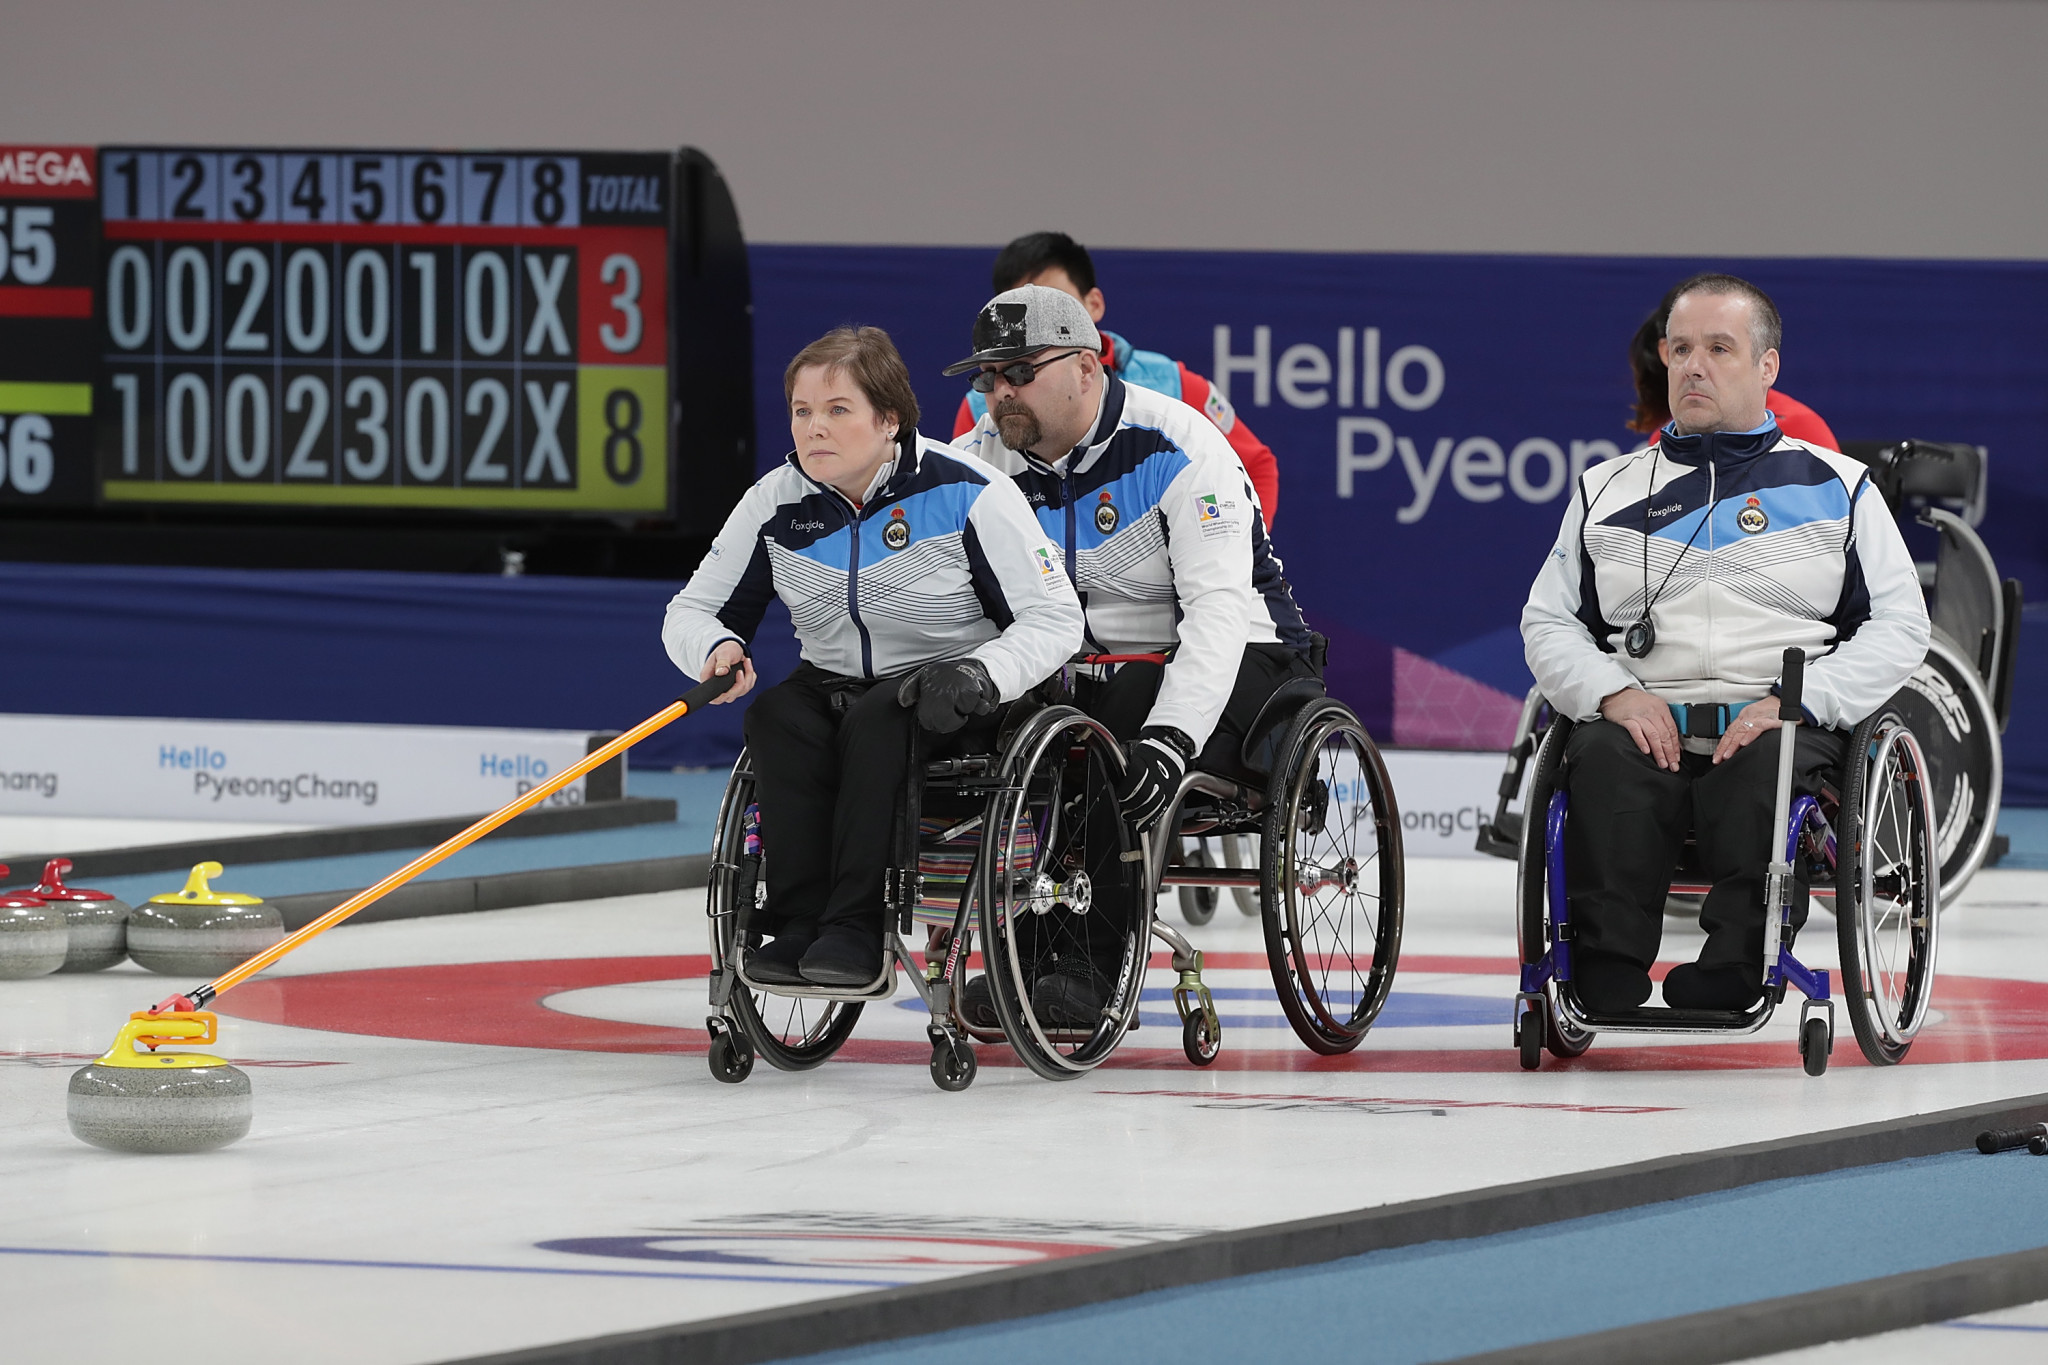 Scotland will be aiming to improve on a silver medal at the World Wheelchair Curling Championship in Wetzikon ©Getty Images